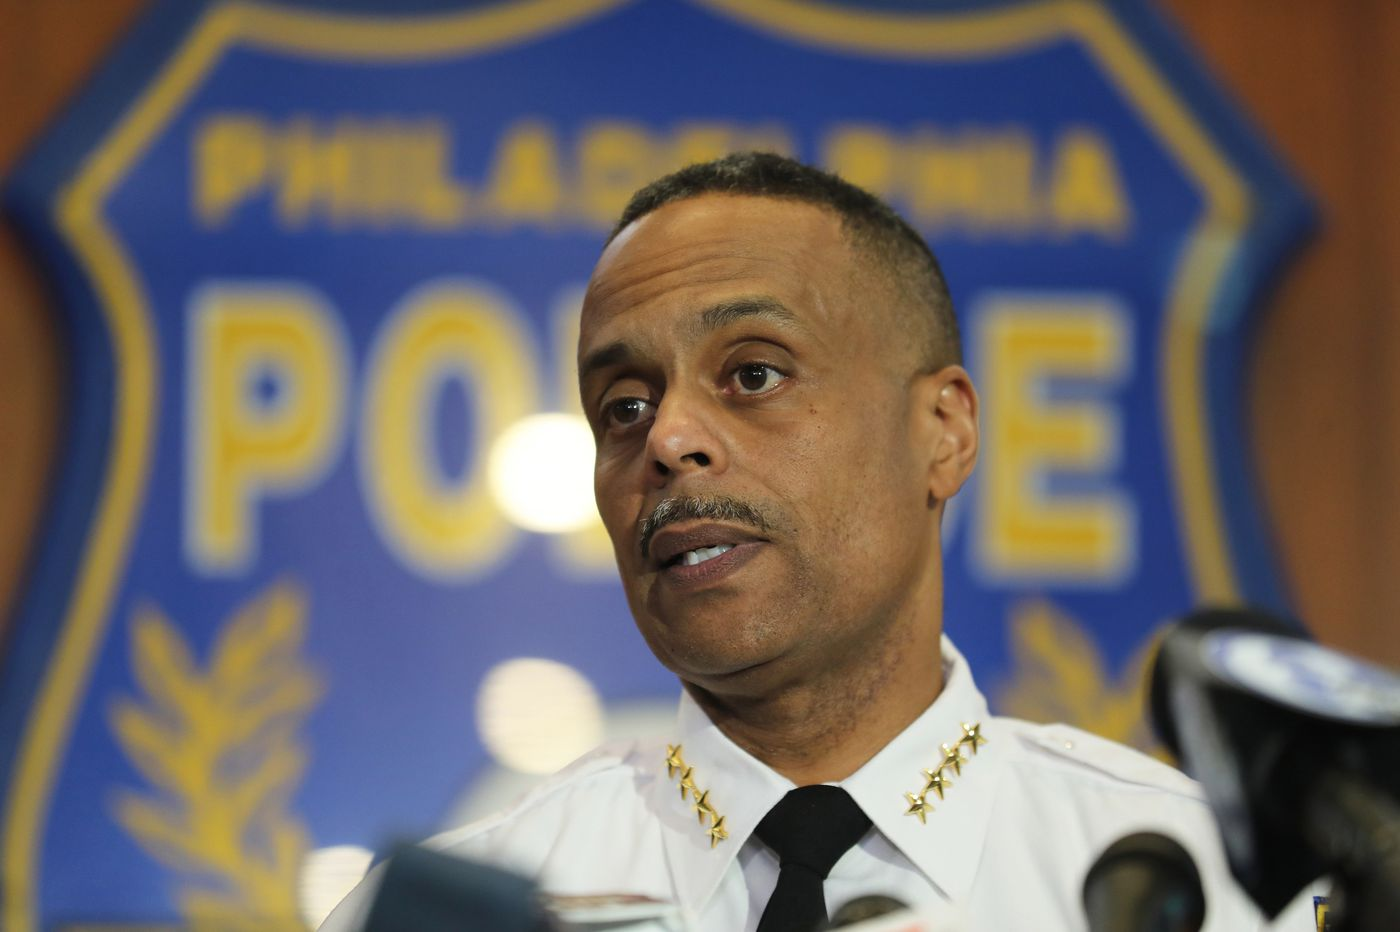 Post-Starbucks, Philly police should accept the 'teachable moment' | Opinion